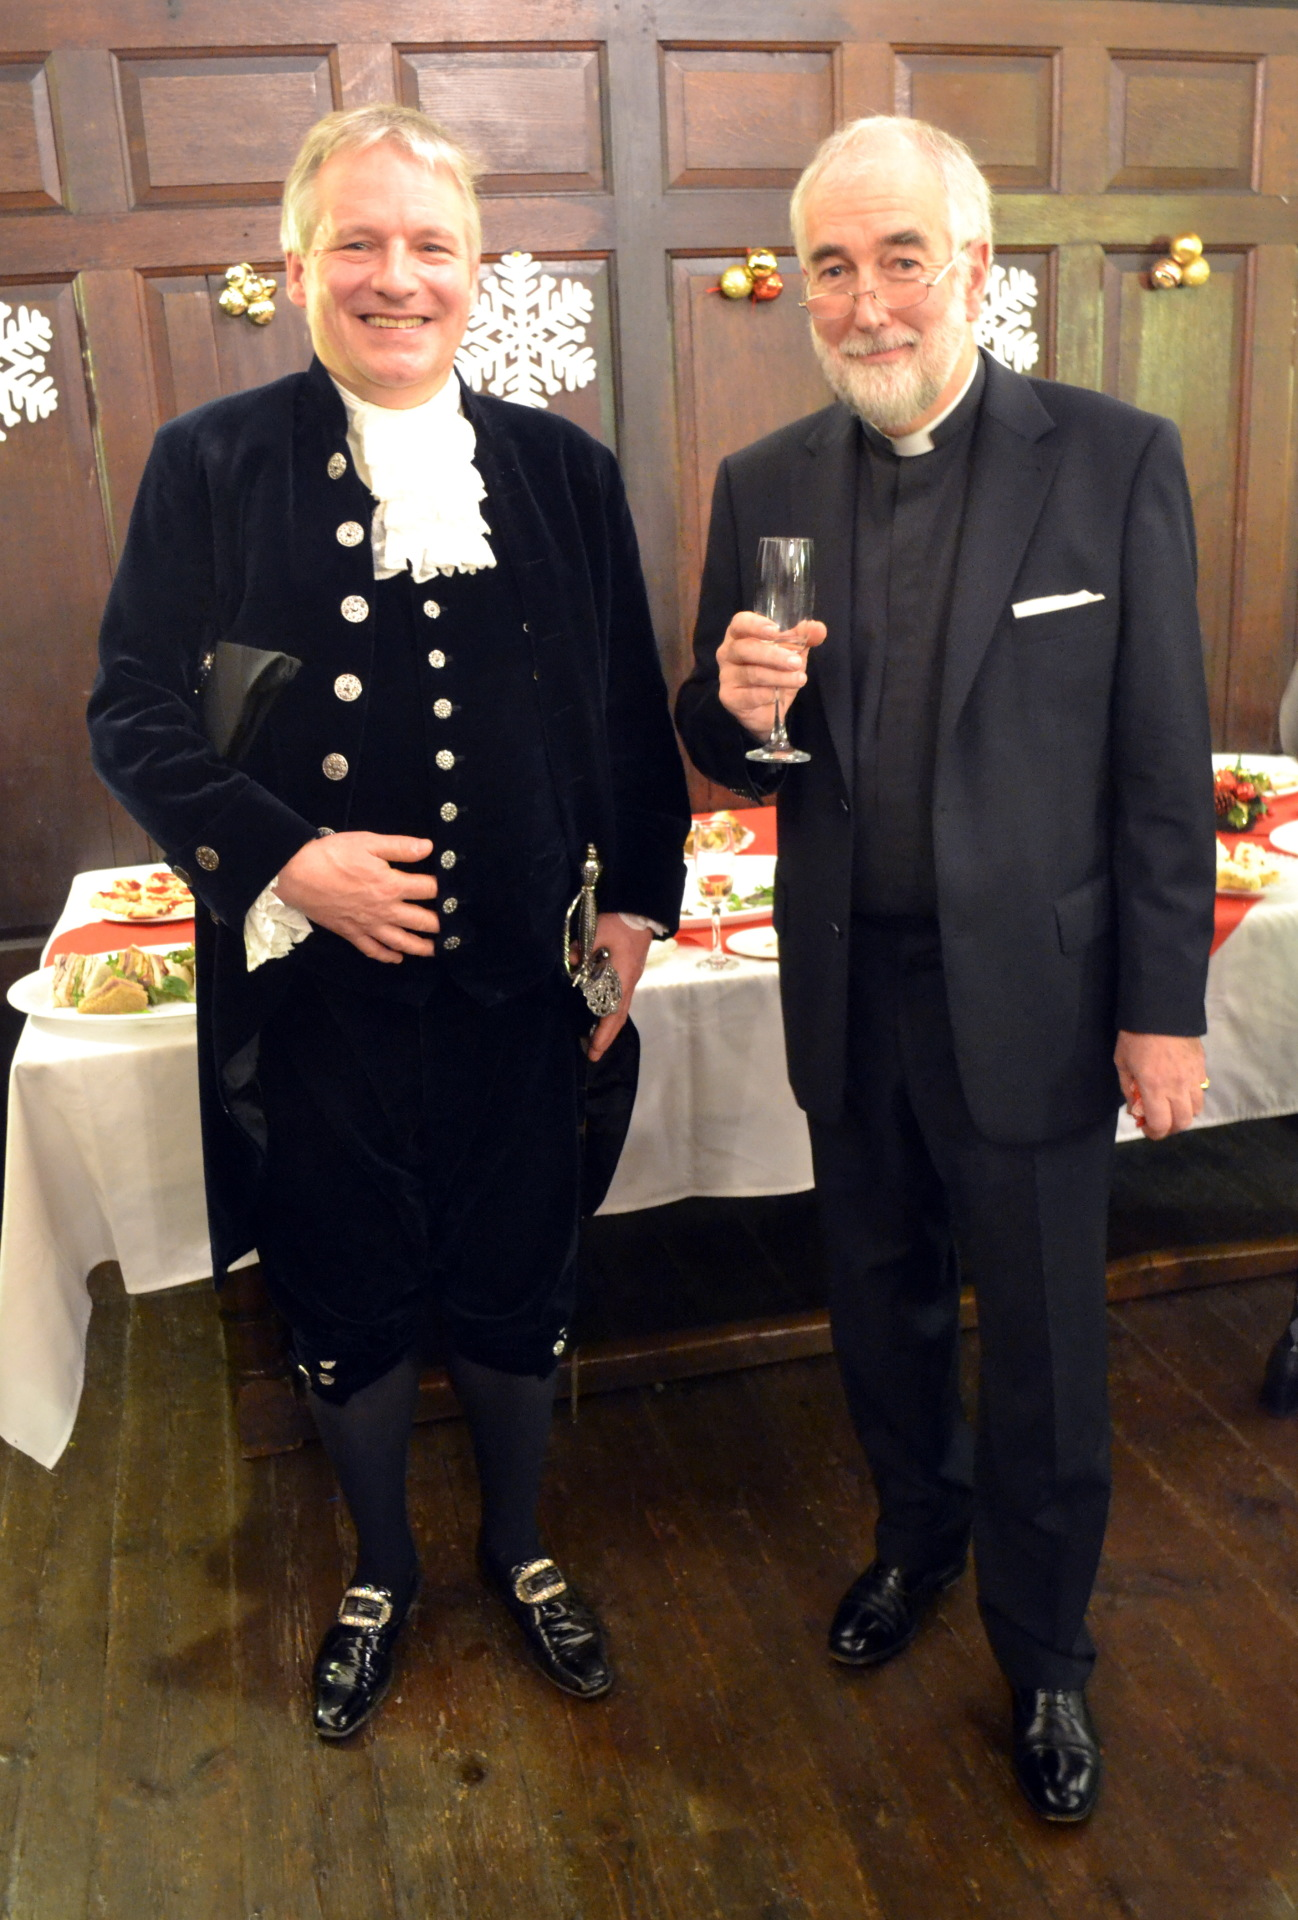 The Chaplain and the Lord High Sheriff of Worcester